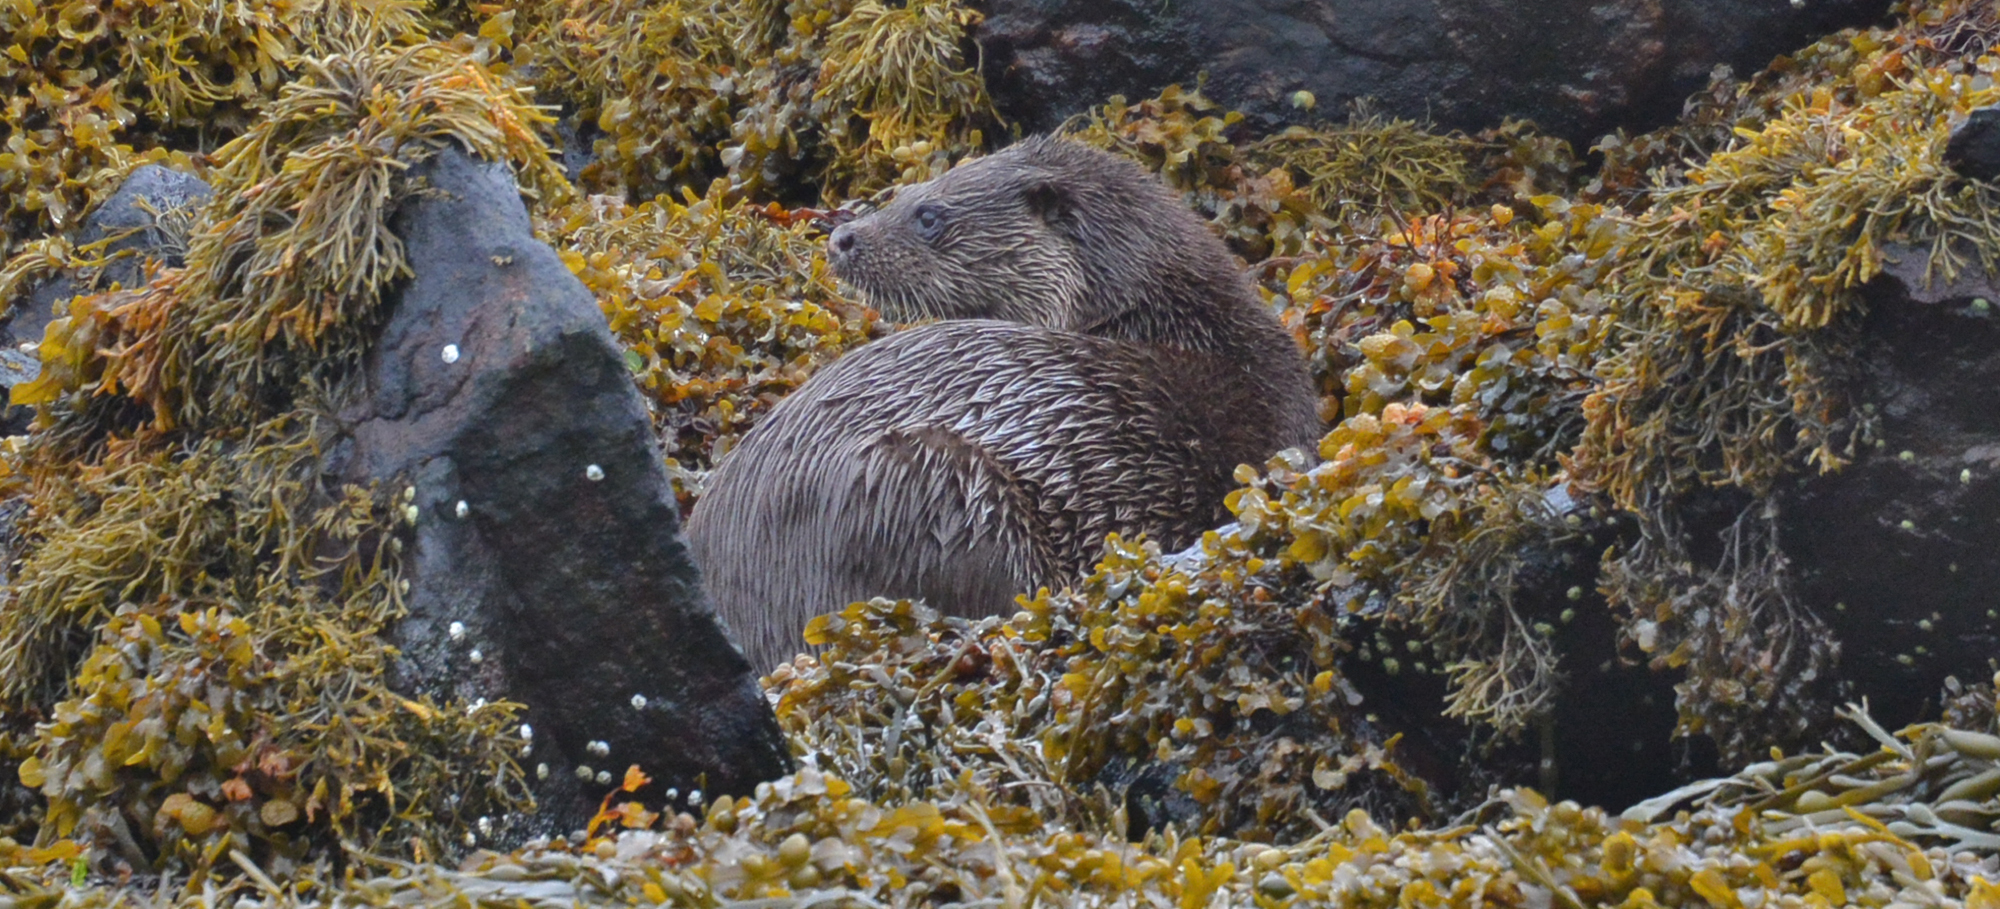 An otter in the weed and rocks